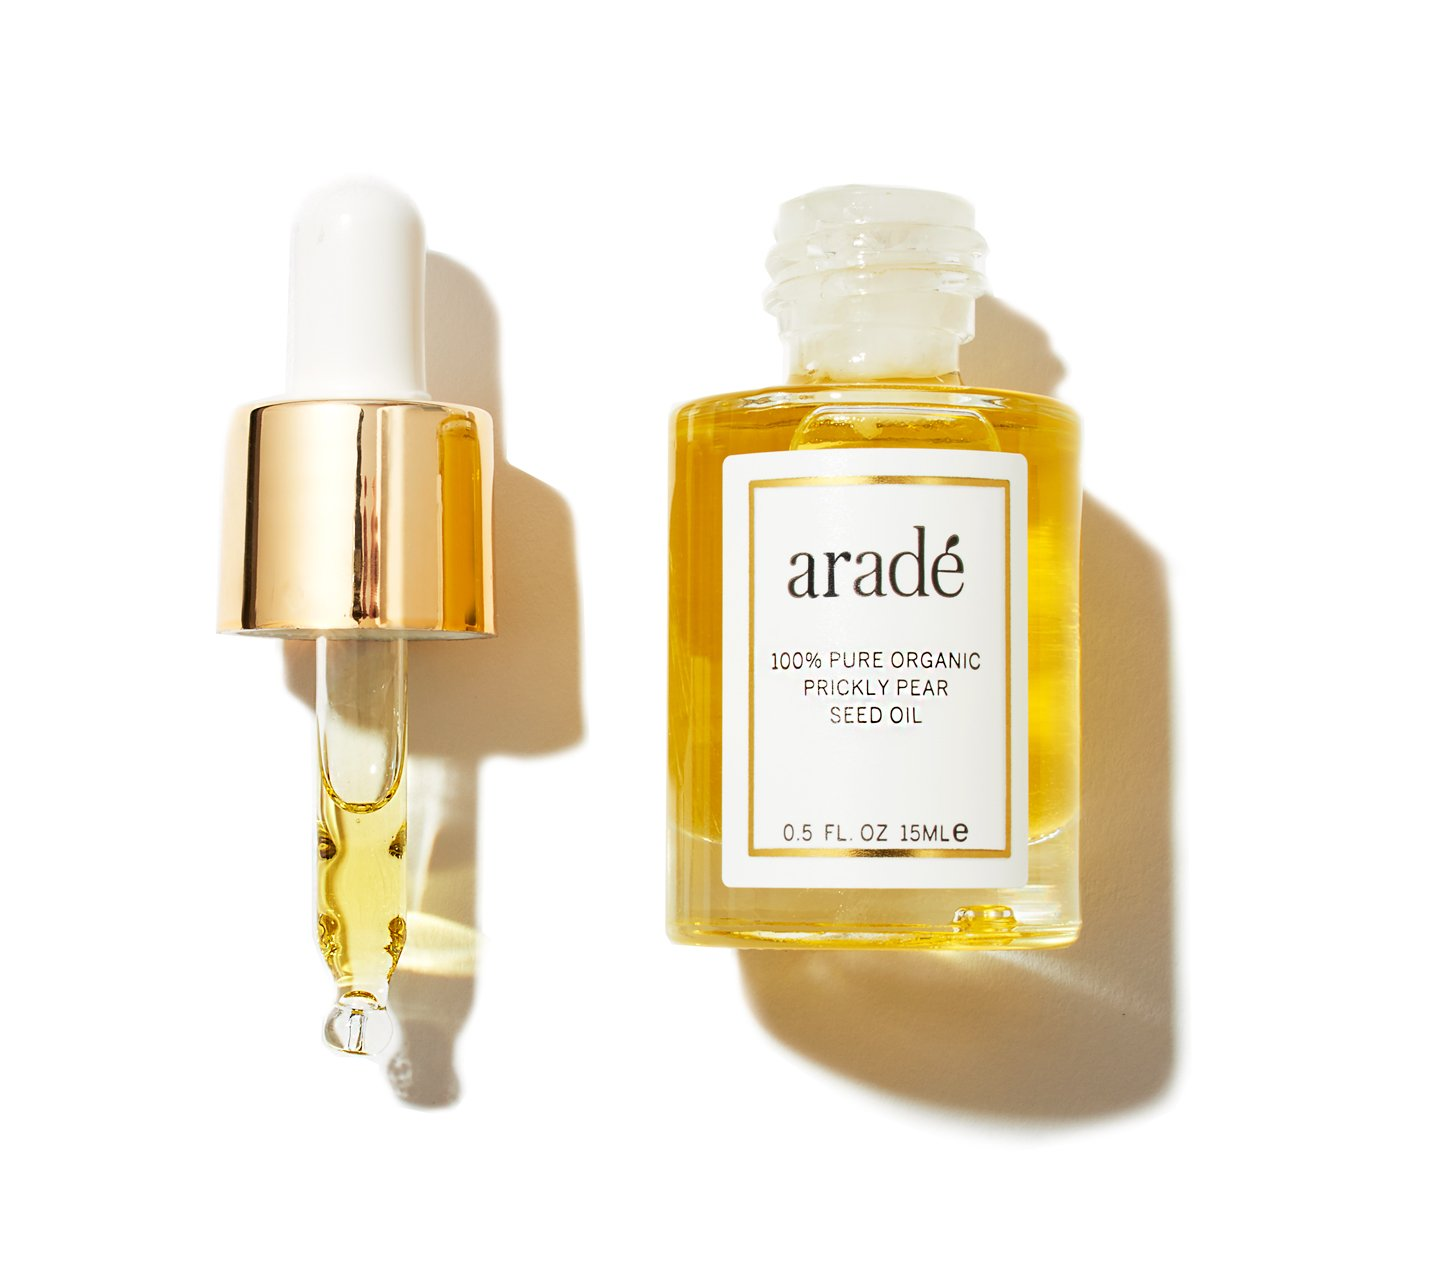 Arade Prickly Pear Seed Oil for Face, Skin & Neck, Topical Facial Oil & Serum by Aradé Beauty With 100% Pure Organic Barbary fig Oil (Prickly Pear Oil) 0.5 fl oz. AR-PP